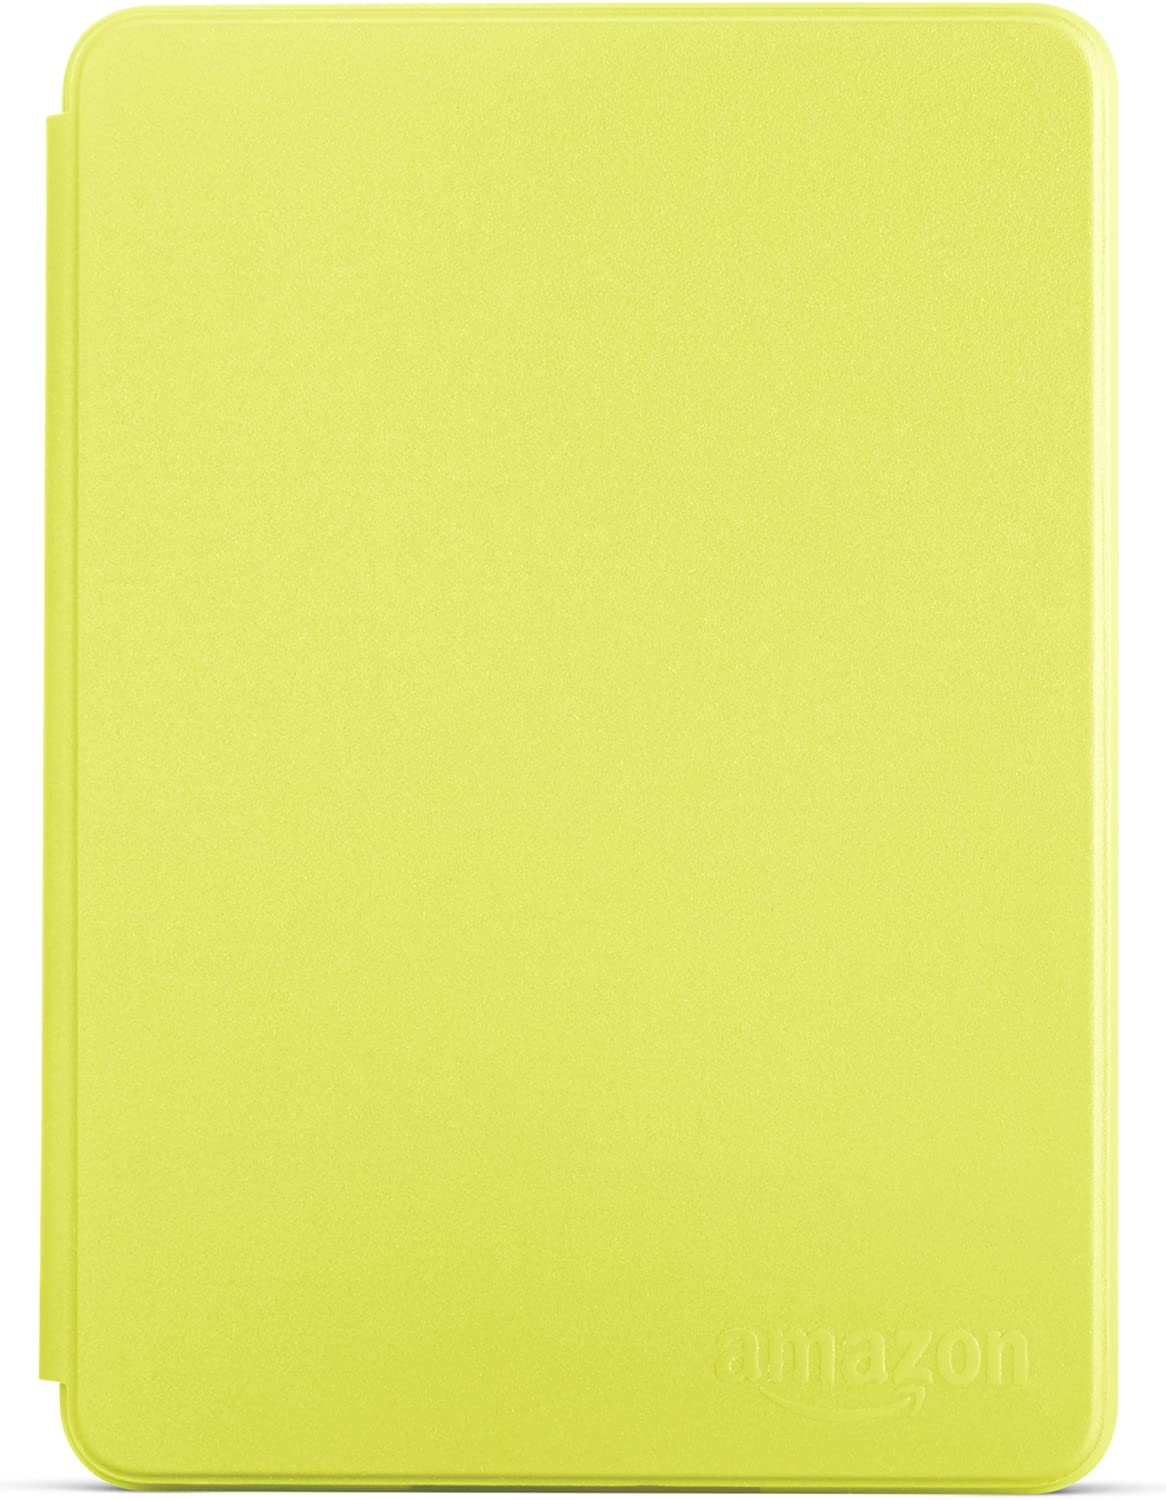 Protective Cover for Kindle will not fit previous generation Kindle devices 7th Generation Citron